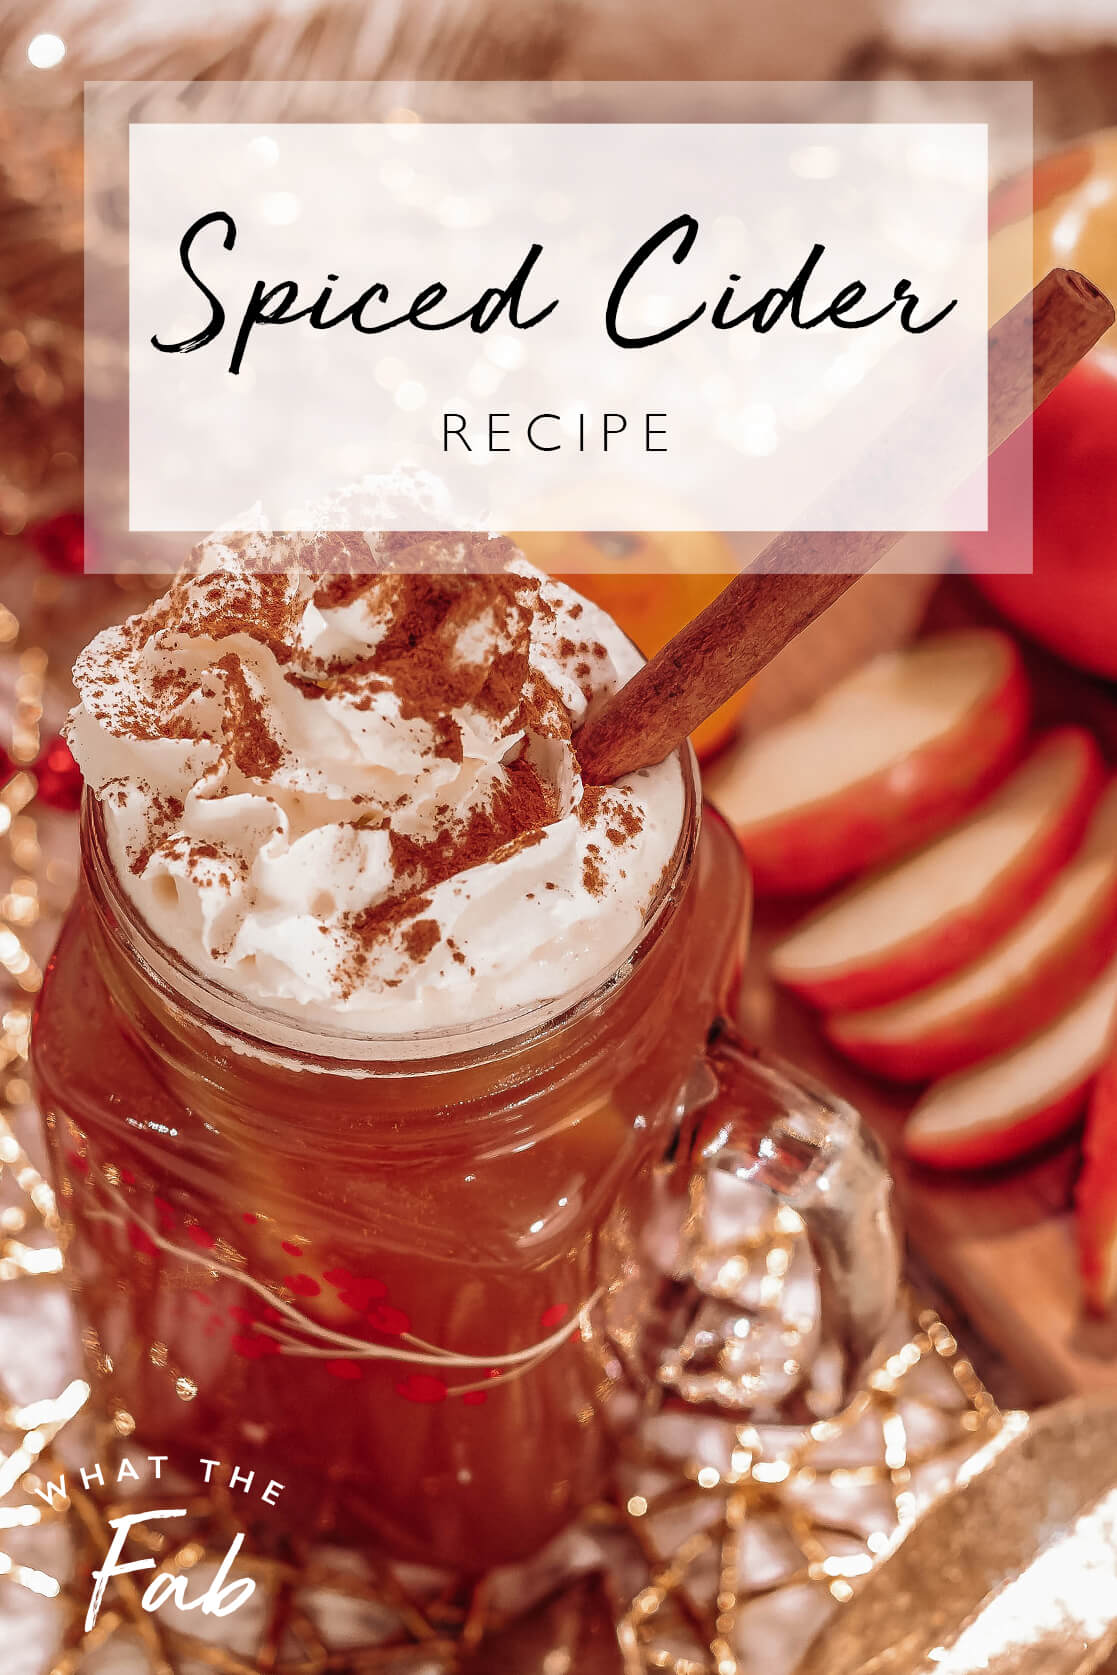 spiced cider with rum